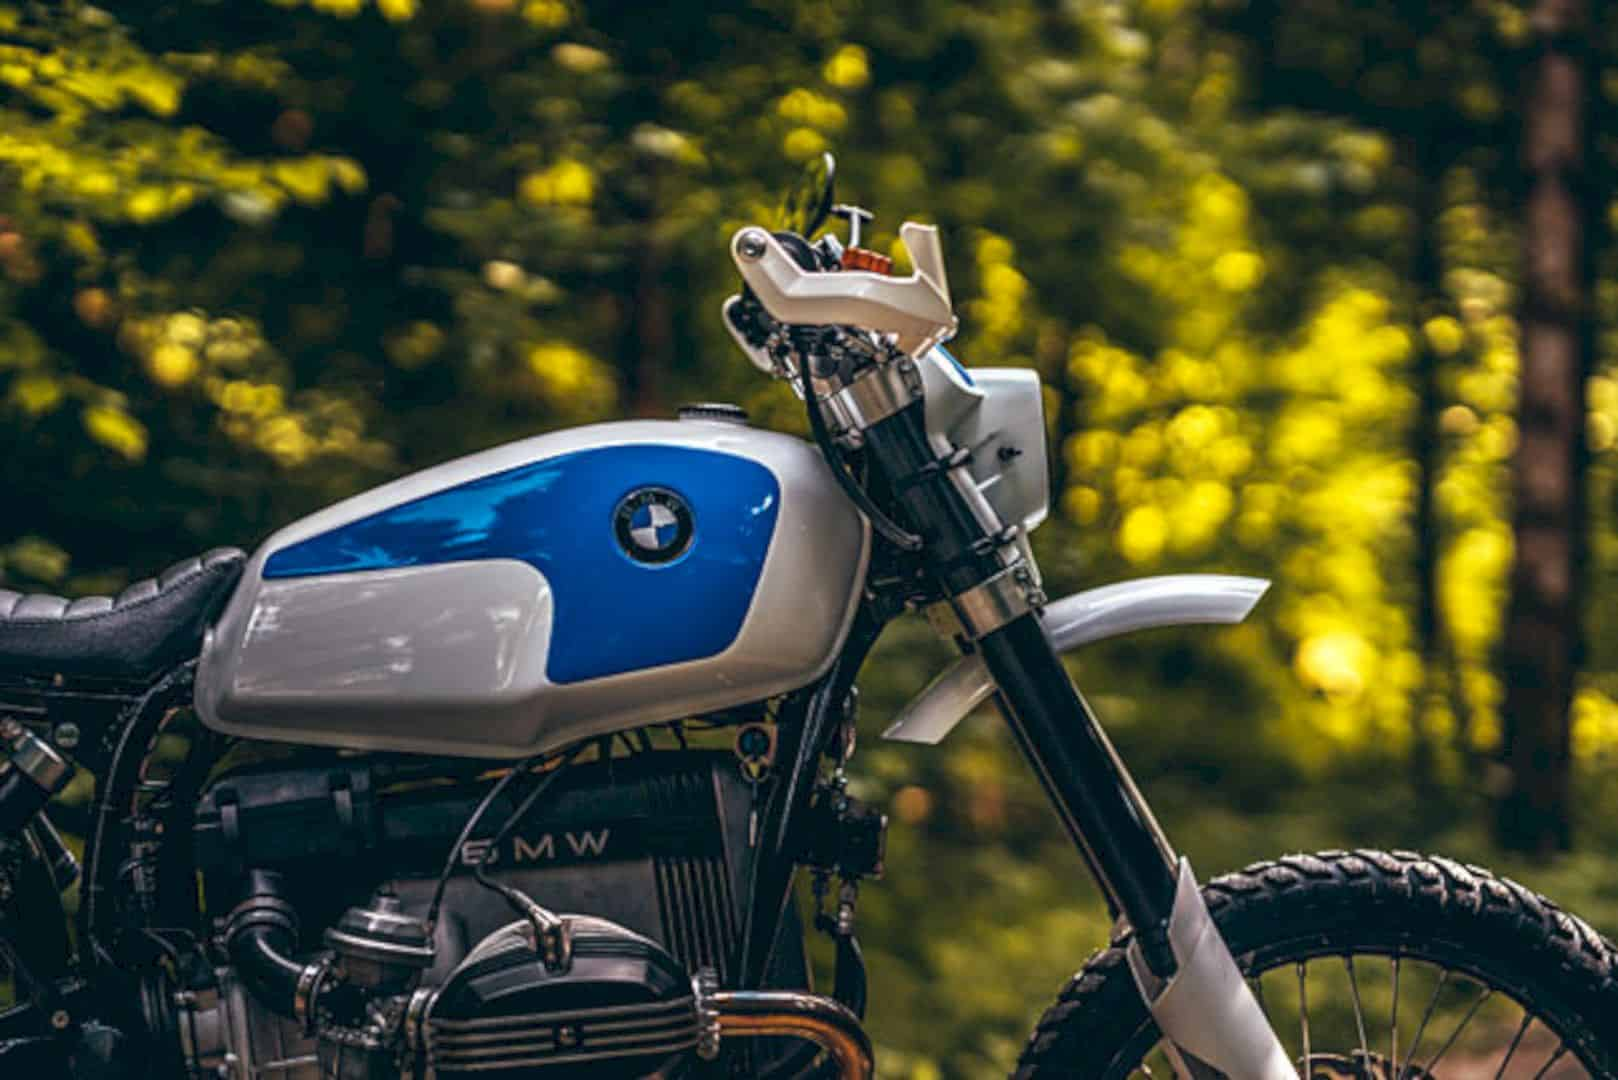 Bmw R80gs Enduro By Nct Motorcycles 3